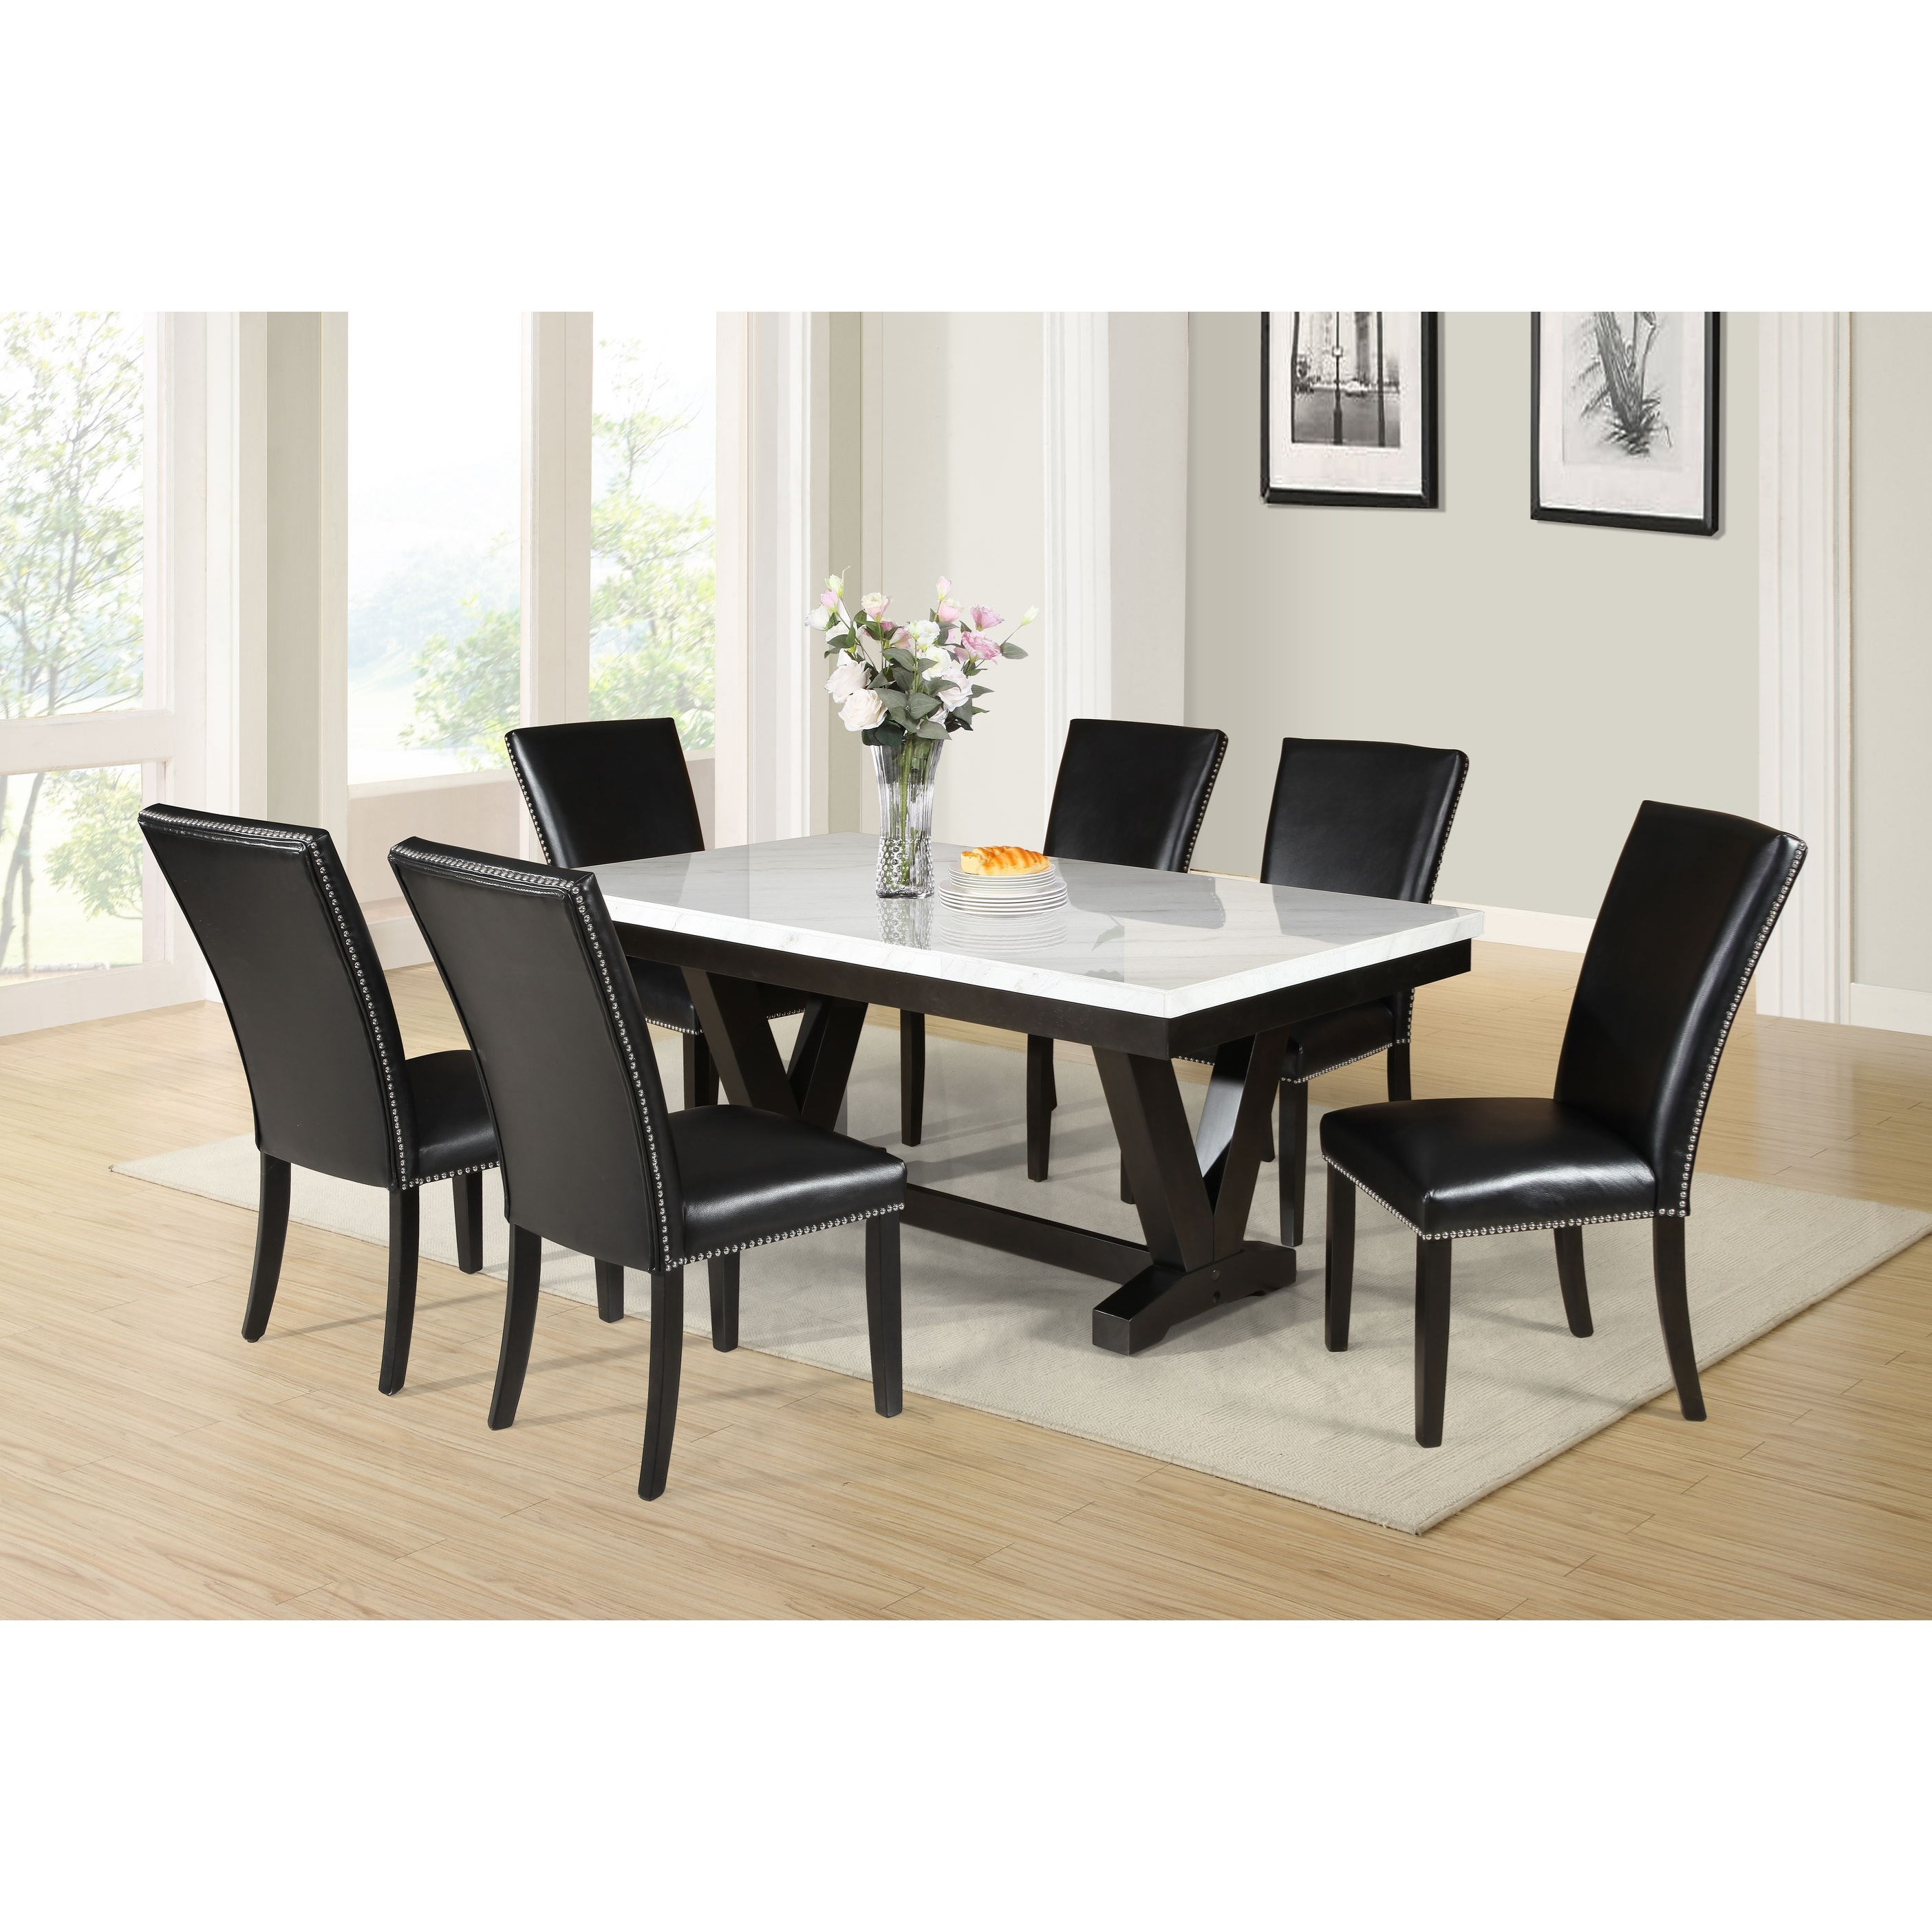 Finley 7-Piece Table and Chair Set by Steve Silver at Walker's Furniture